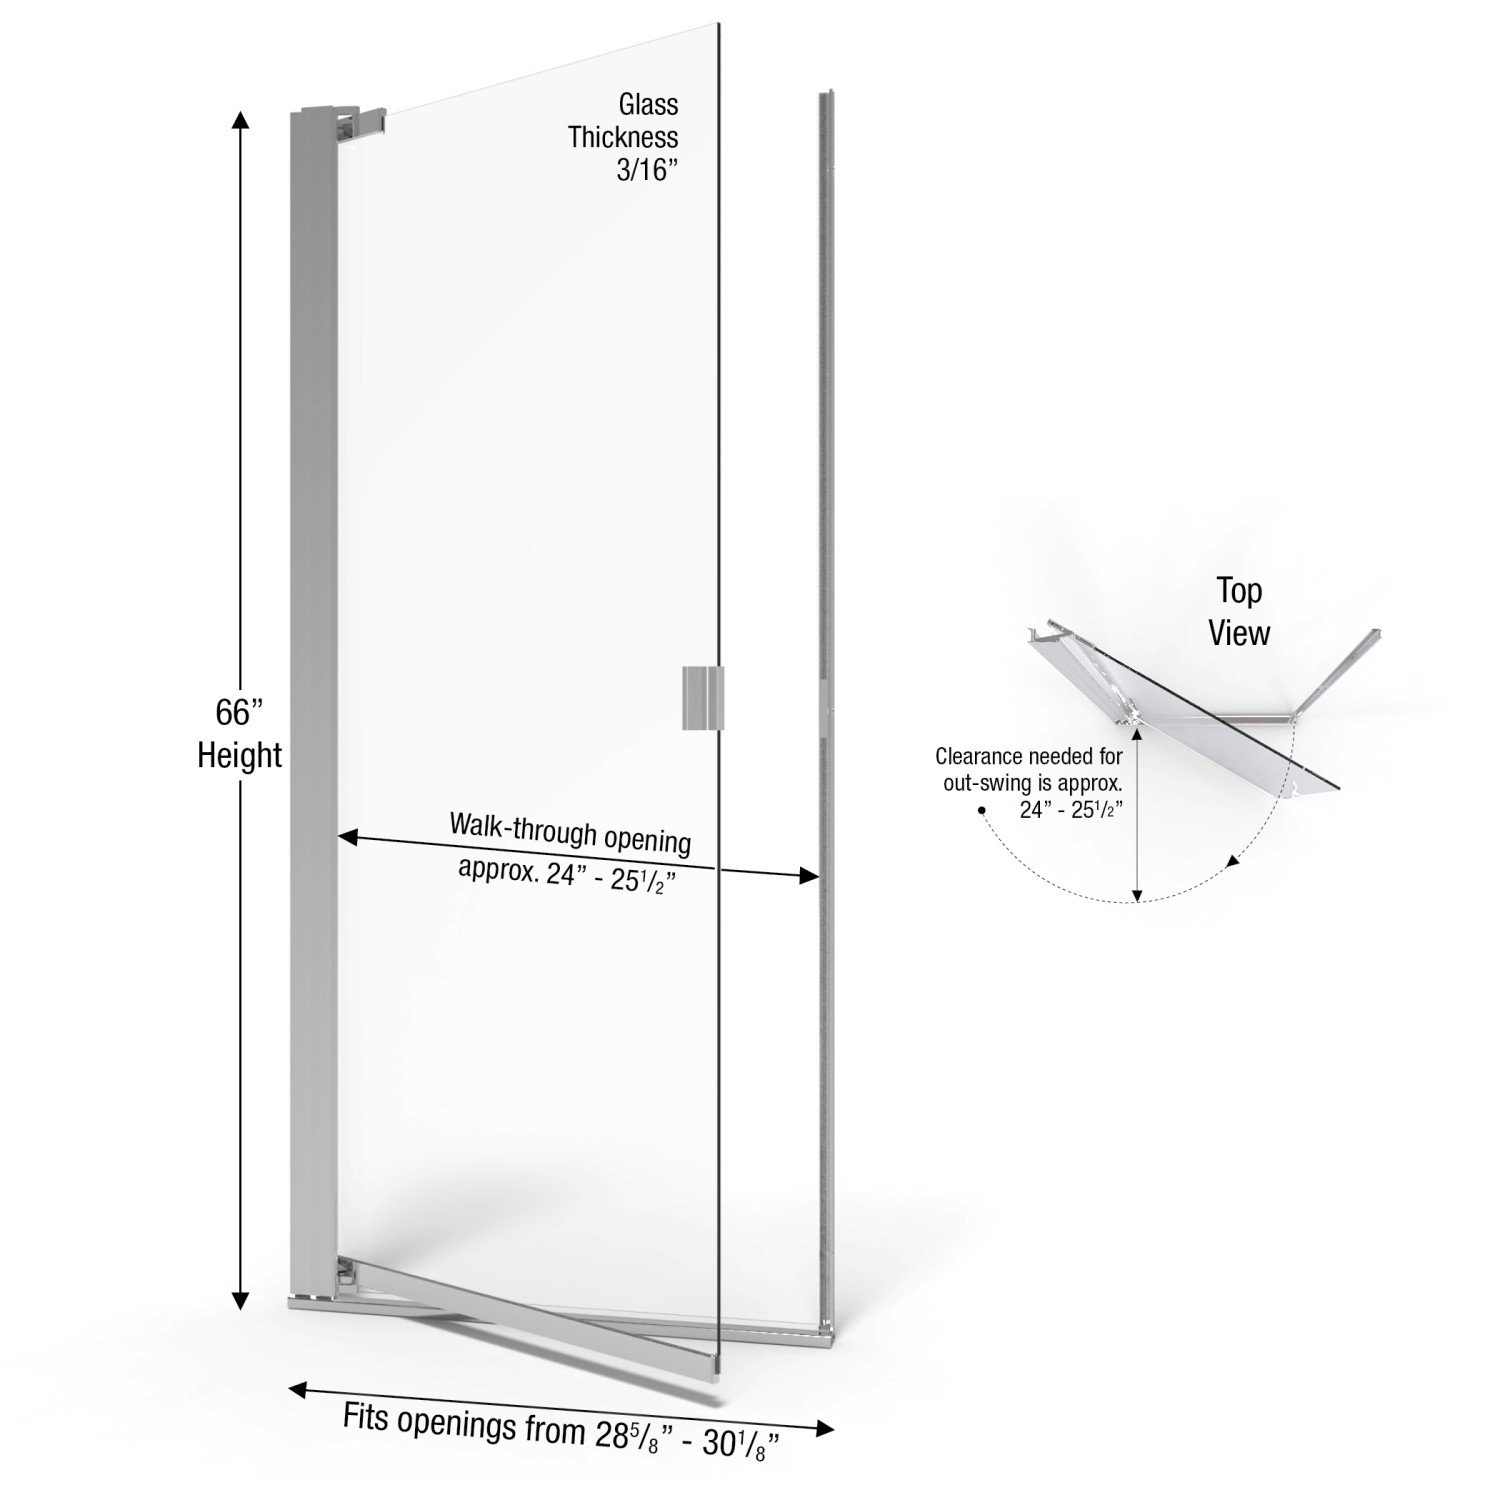 Basco Classic 28.625 to 30.125 in. width, Semi-Frameless Pivot Shower Door, Clear Glass, Silver Finish by Basco Shower Door (Image #3)